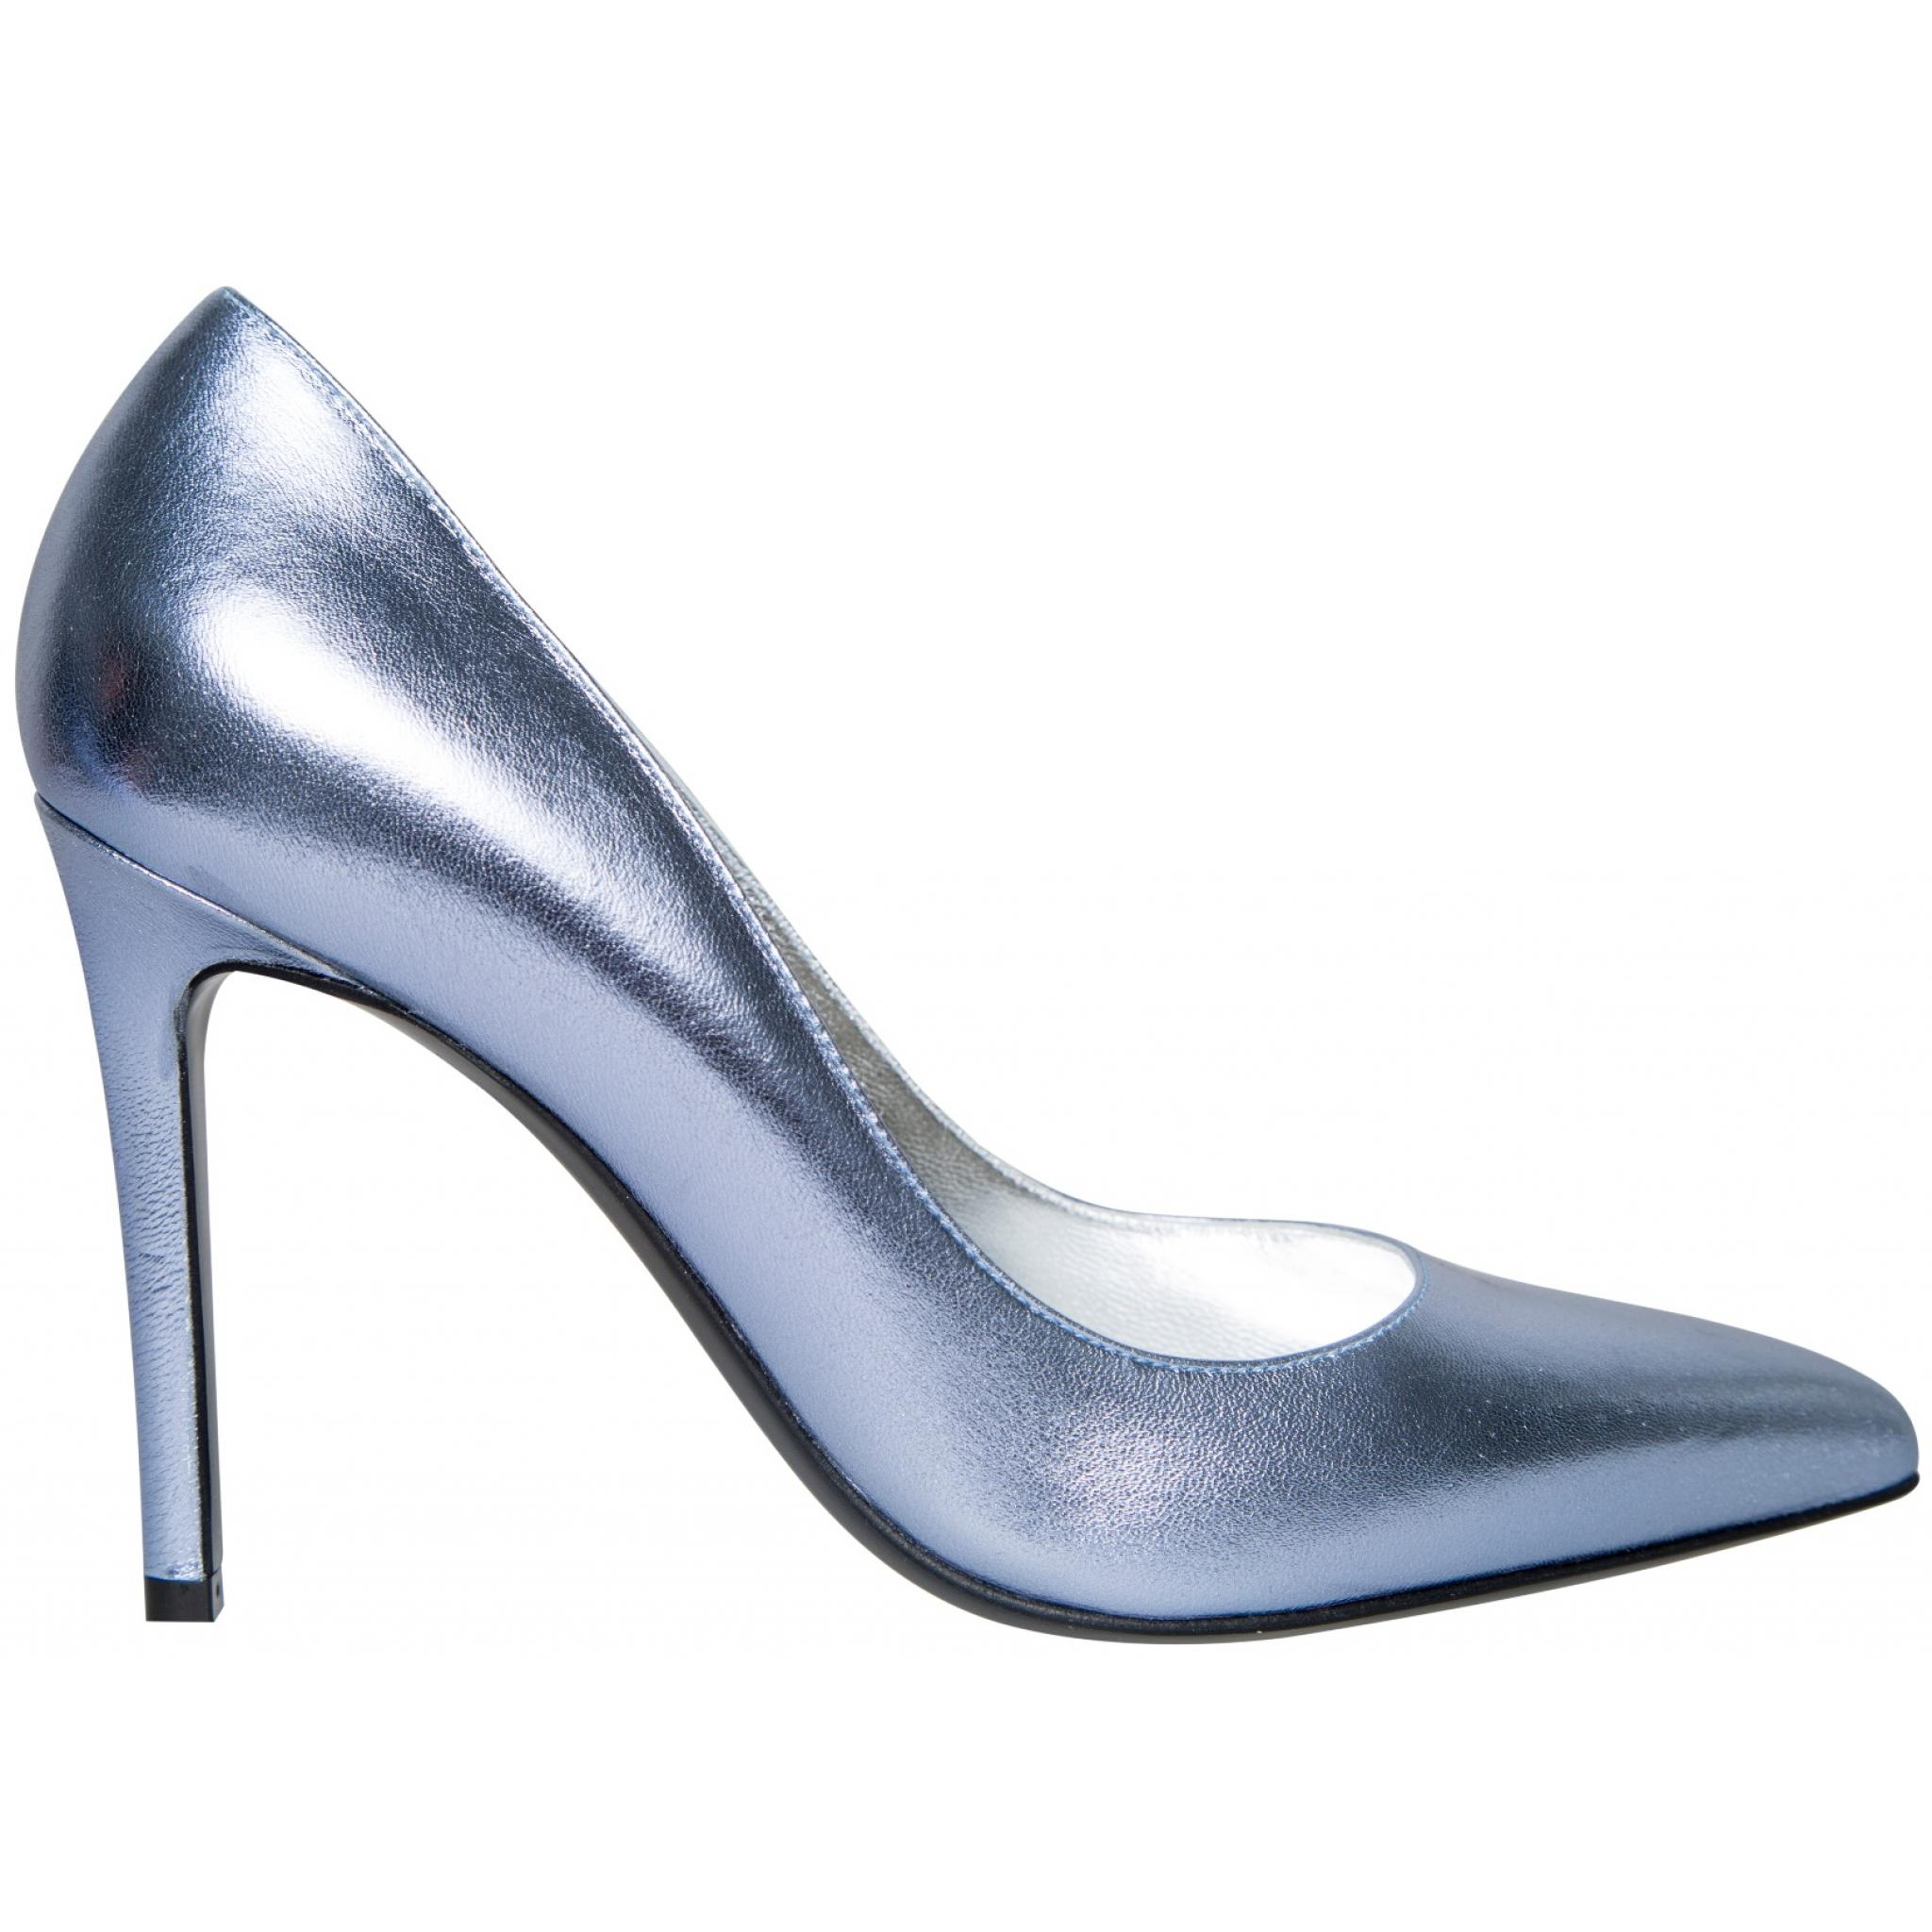 Pumps in Metallicleder mit High-Heel-Absatz-0